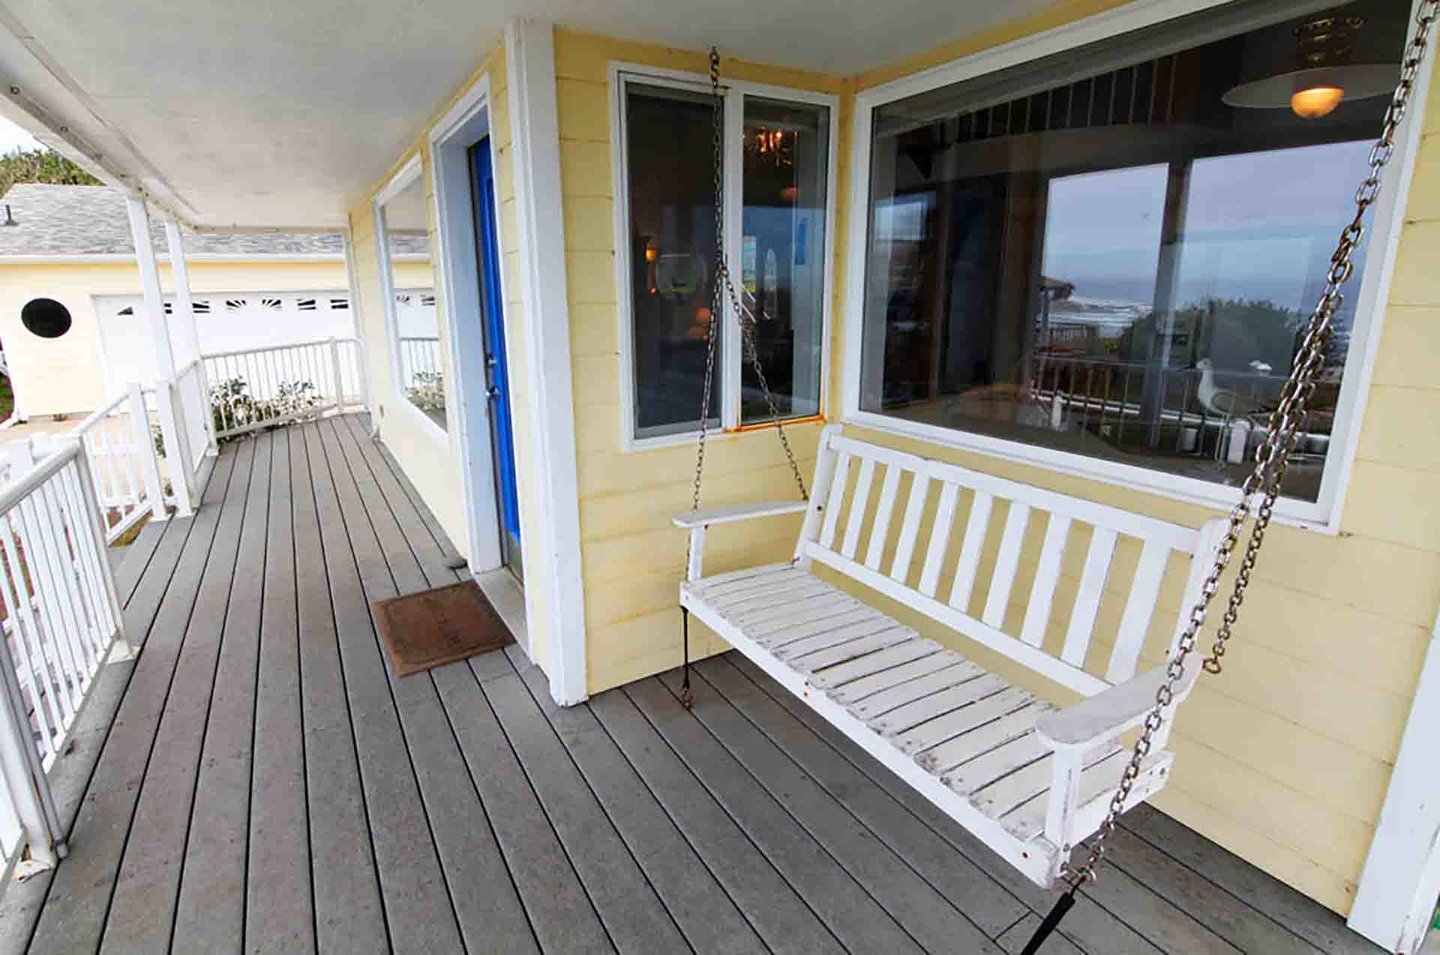 Relax on the porch swing with the sights and sounds of the ocean.